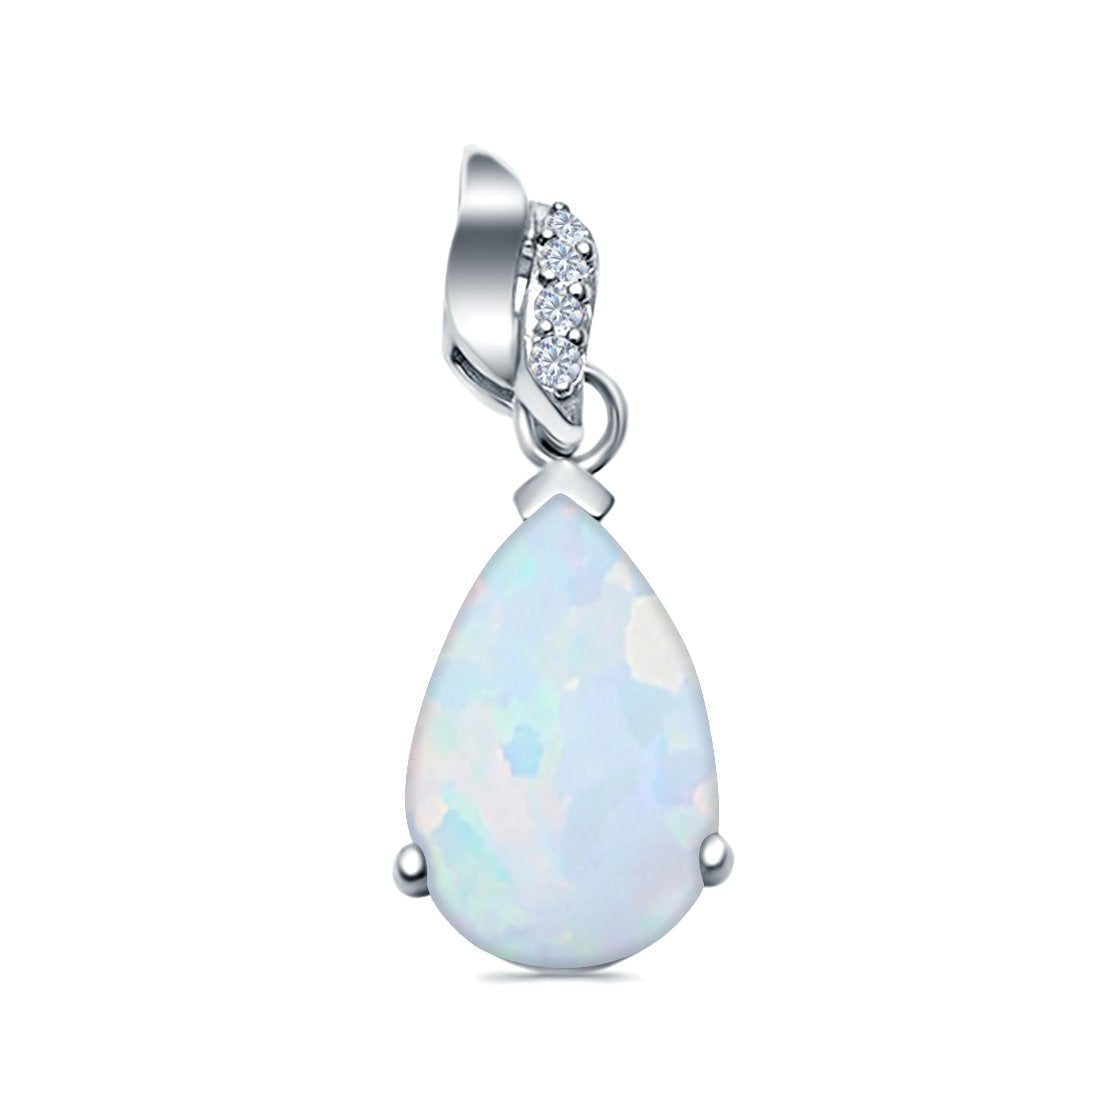 Pear Shape Lab Created Opal & Simulated Cubic Zirconia 925 Sterling Silver Charm Pendant